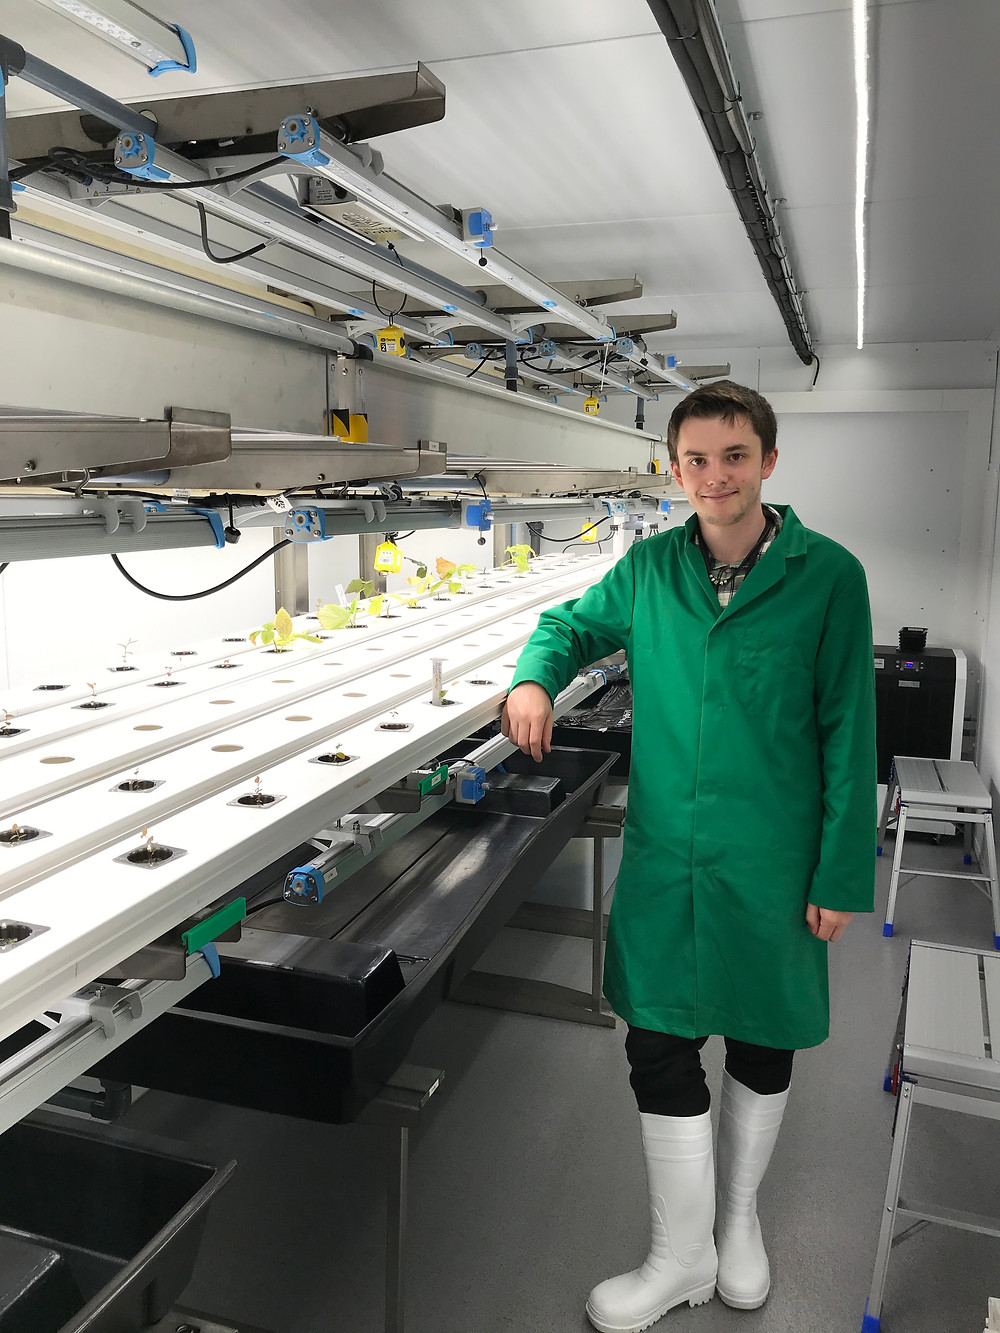 Scientific research assistant standing in front of vertical farming (controlled environment) equipment